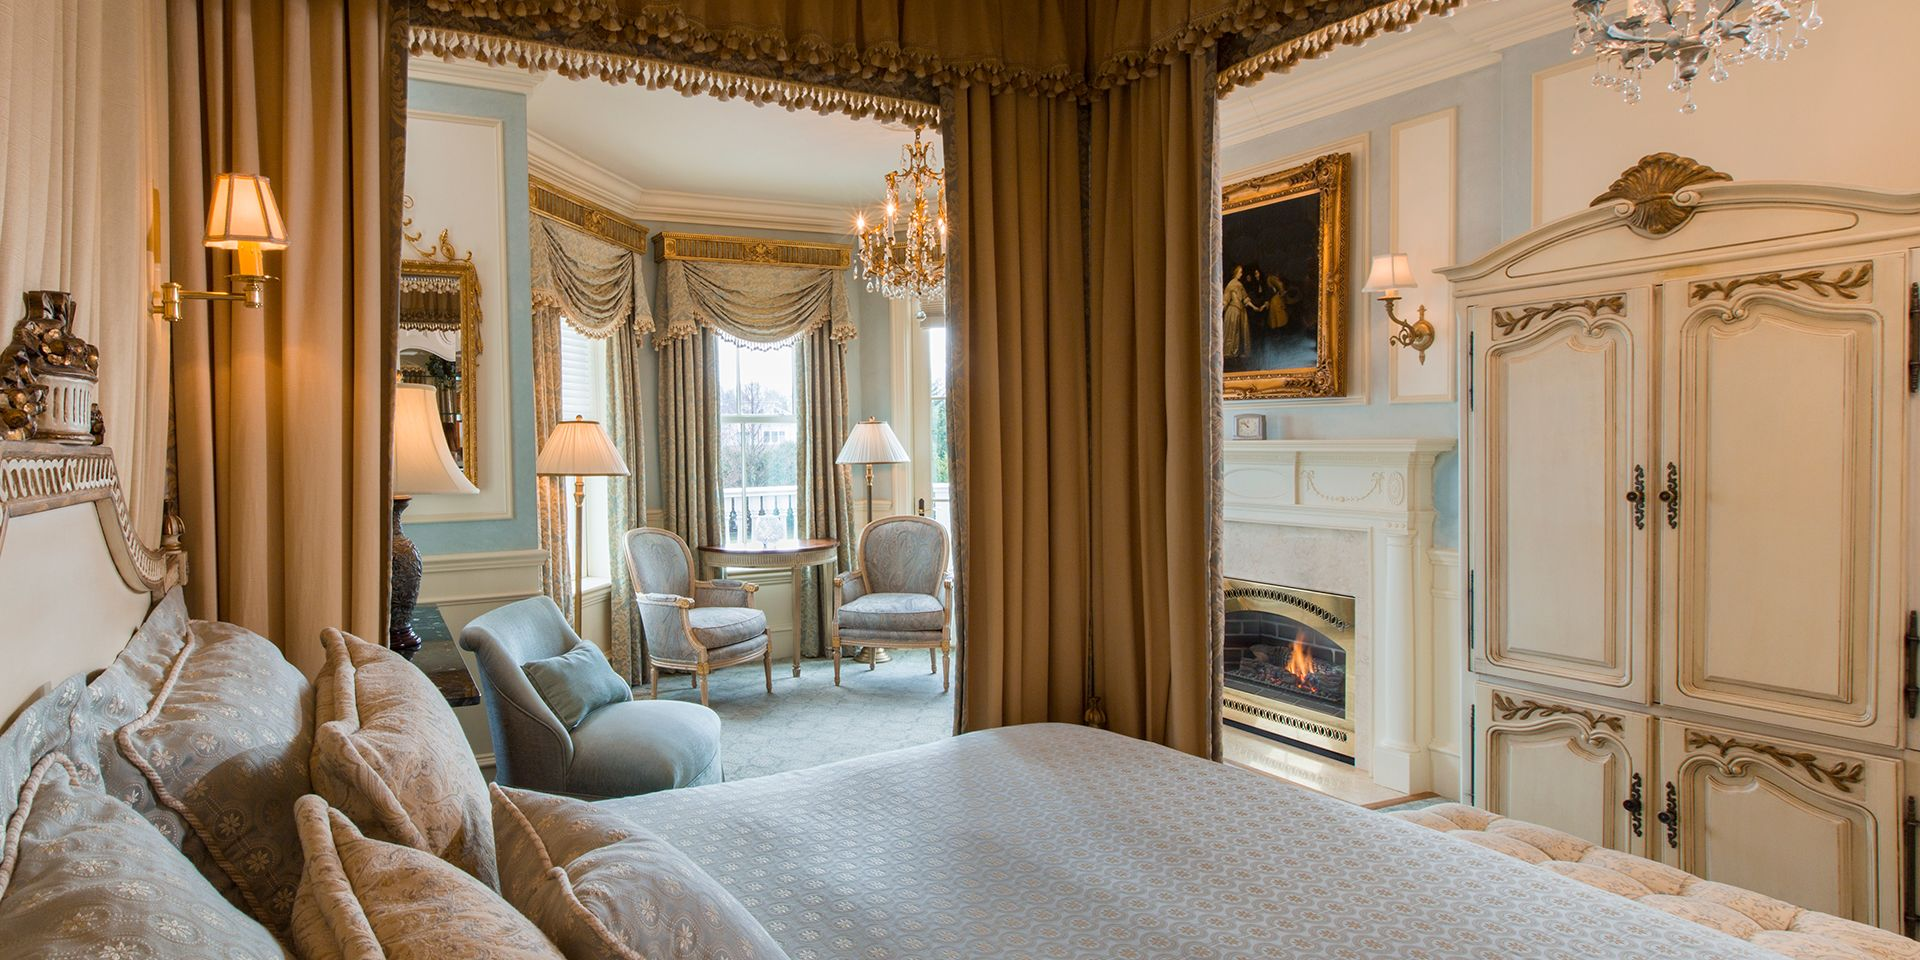 The Chanler's 20 unique guest rooms like our Louis XVI guest room allows guests to create a customized itinerary for their trip to Newport